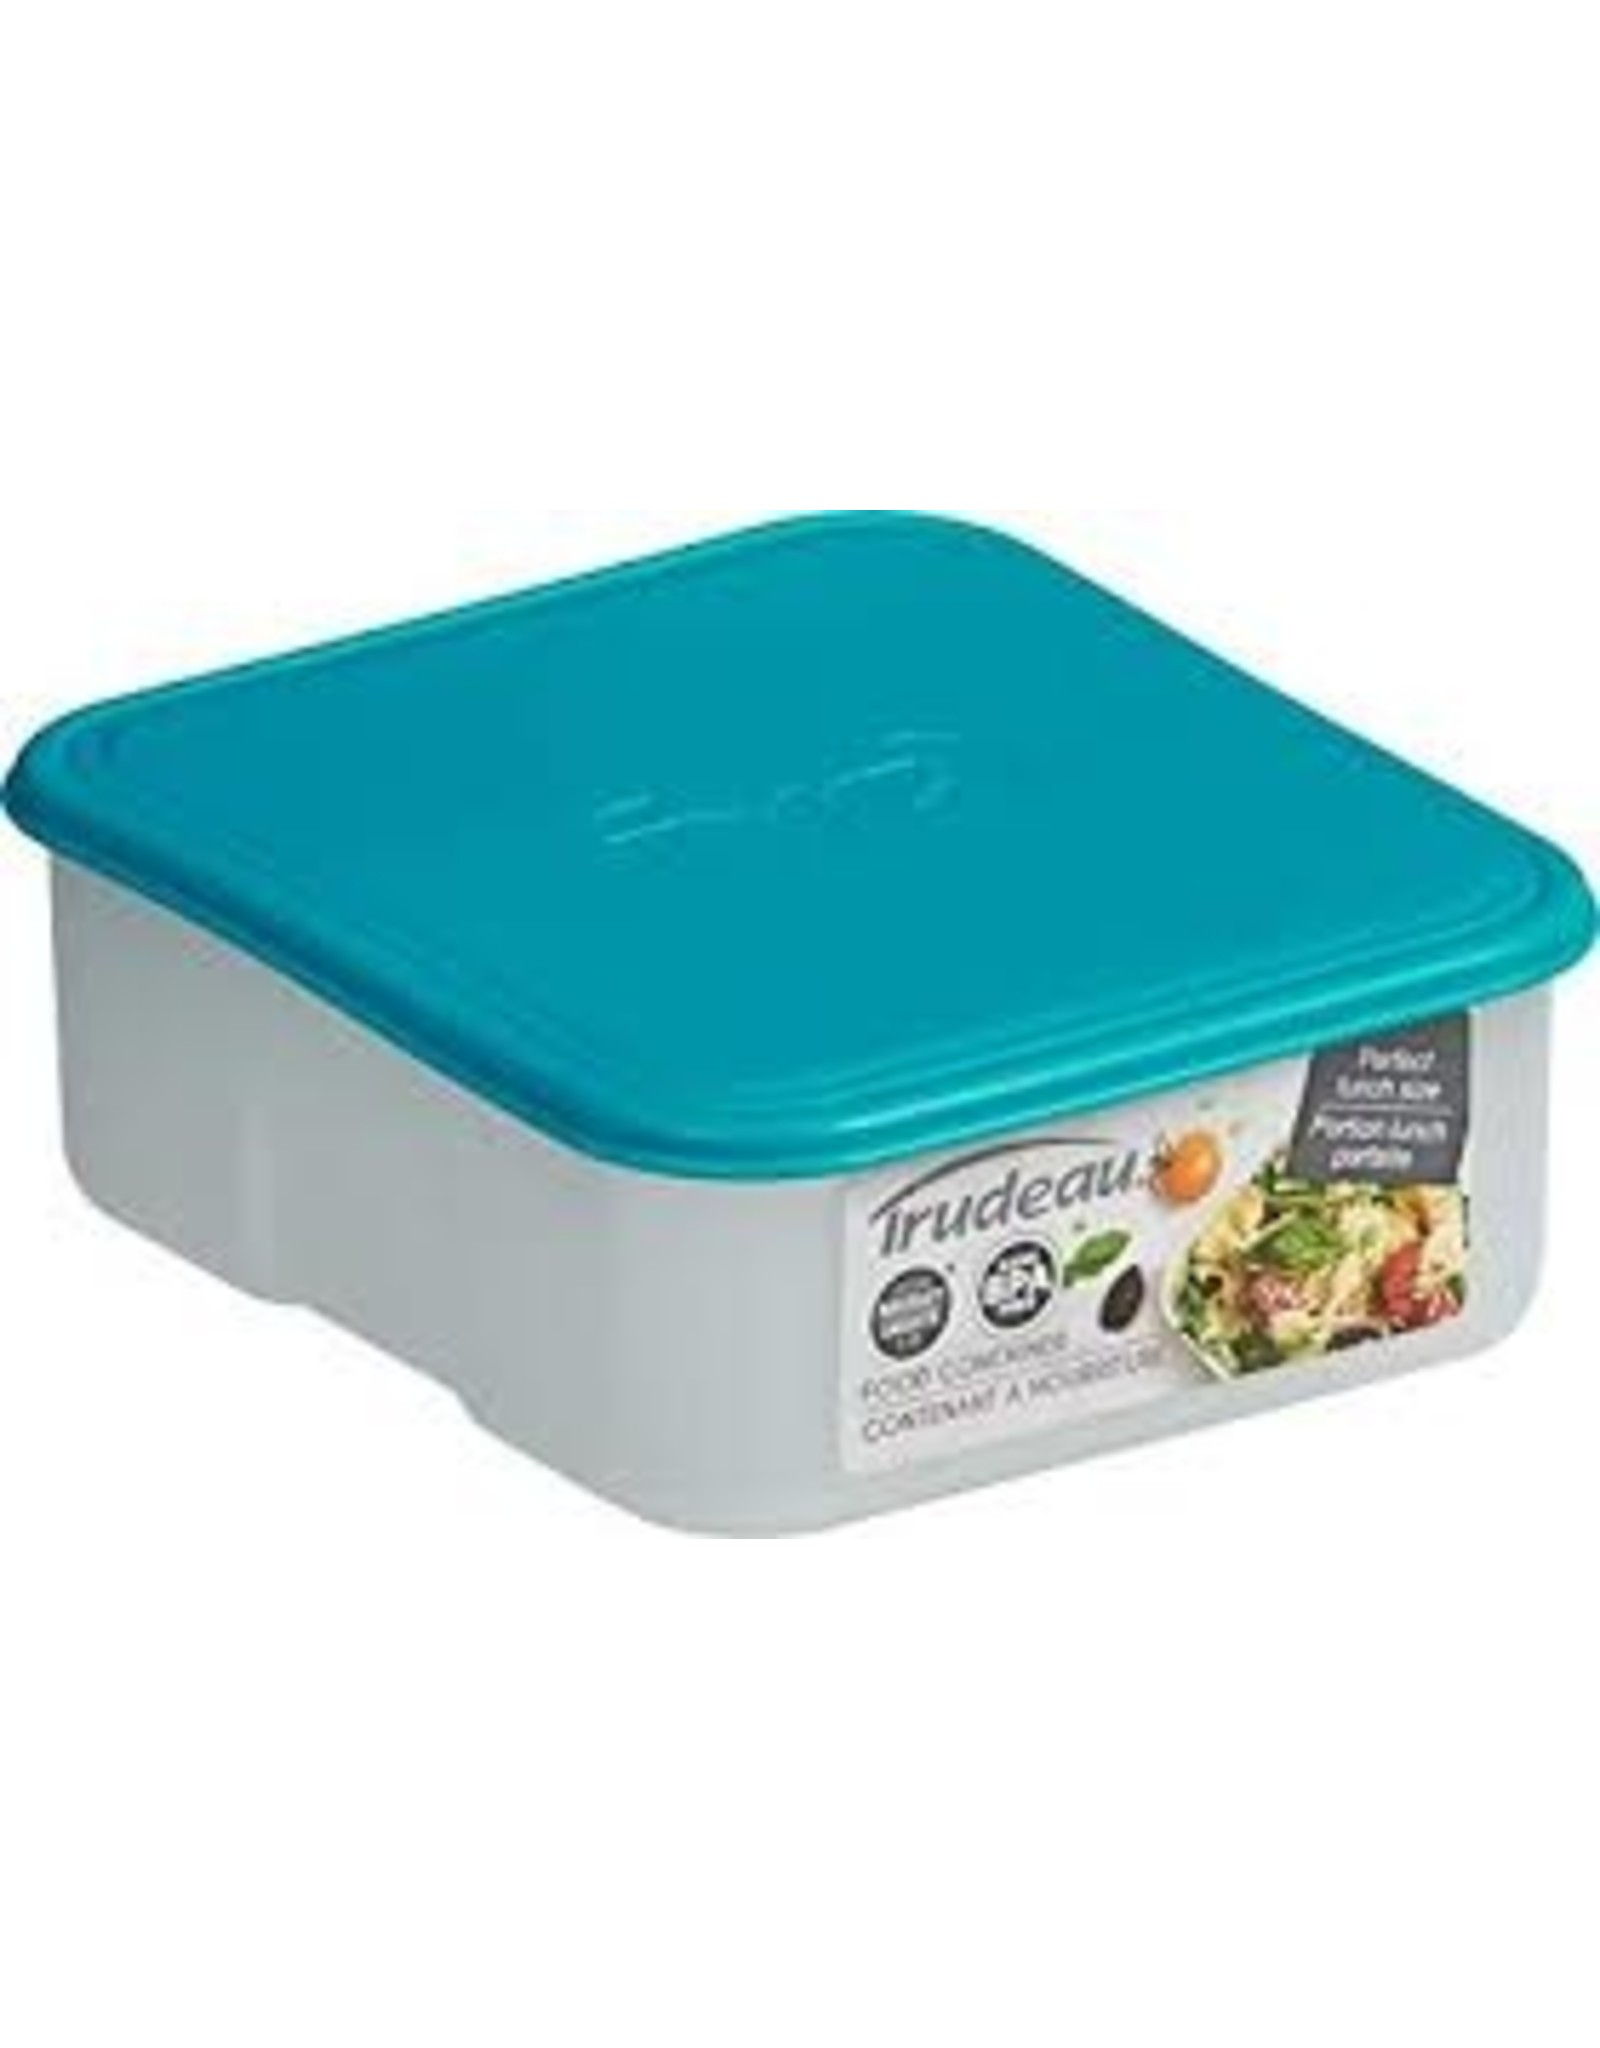 TRUD Avalanche Food Container